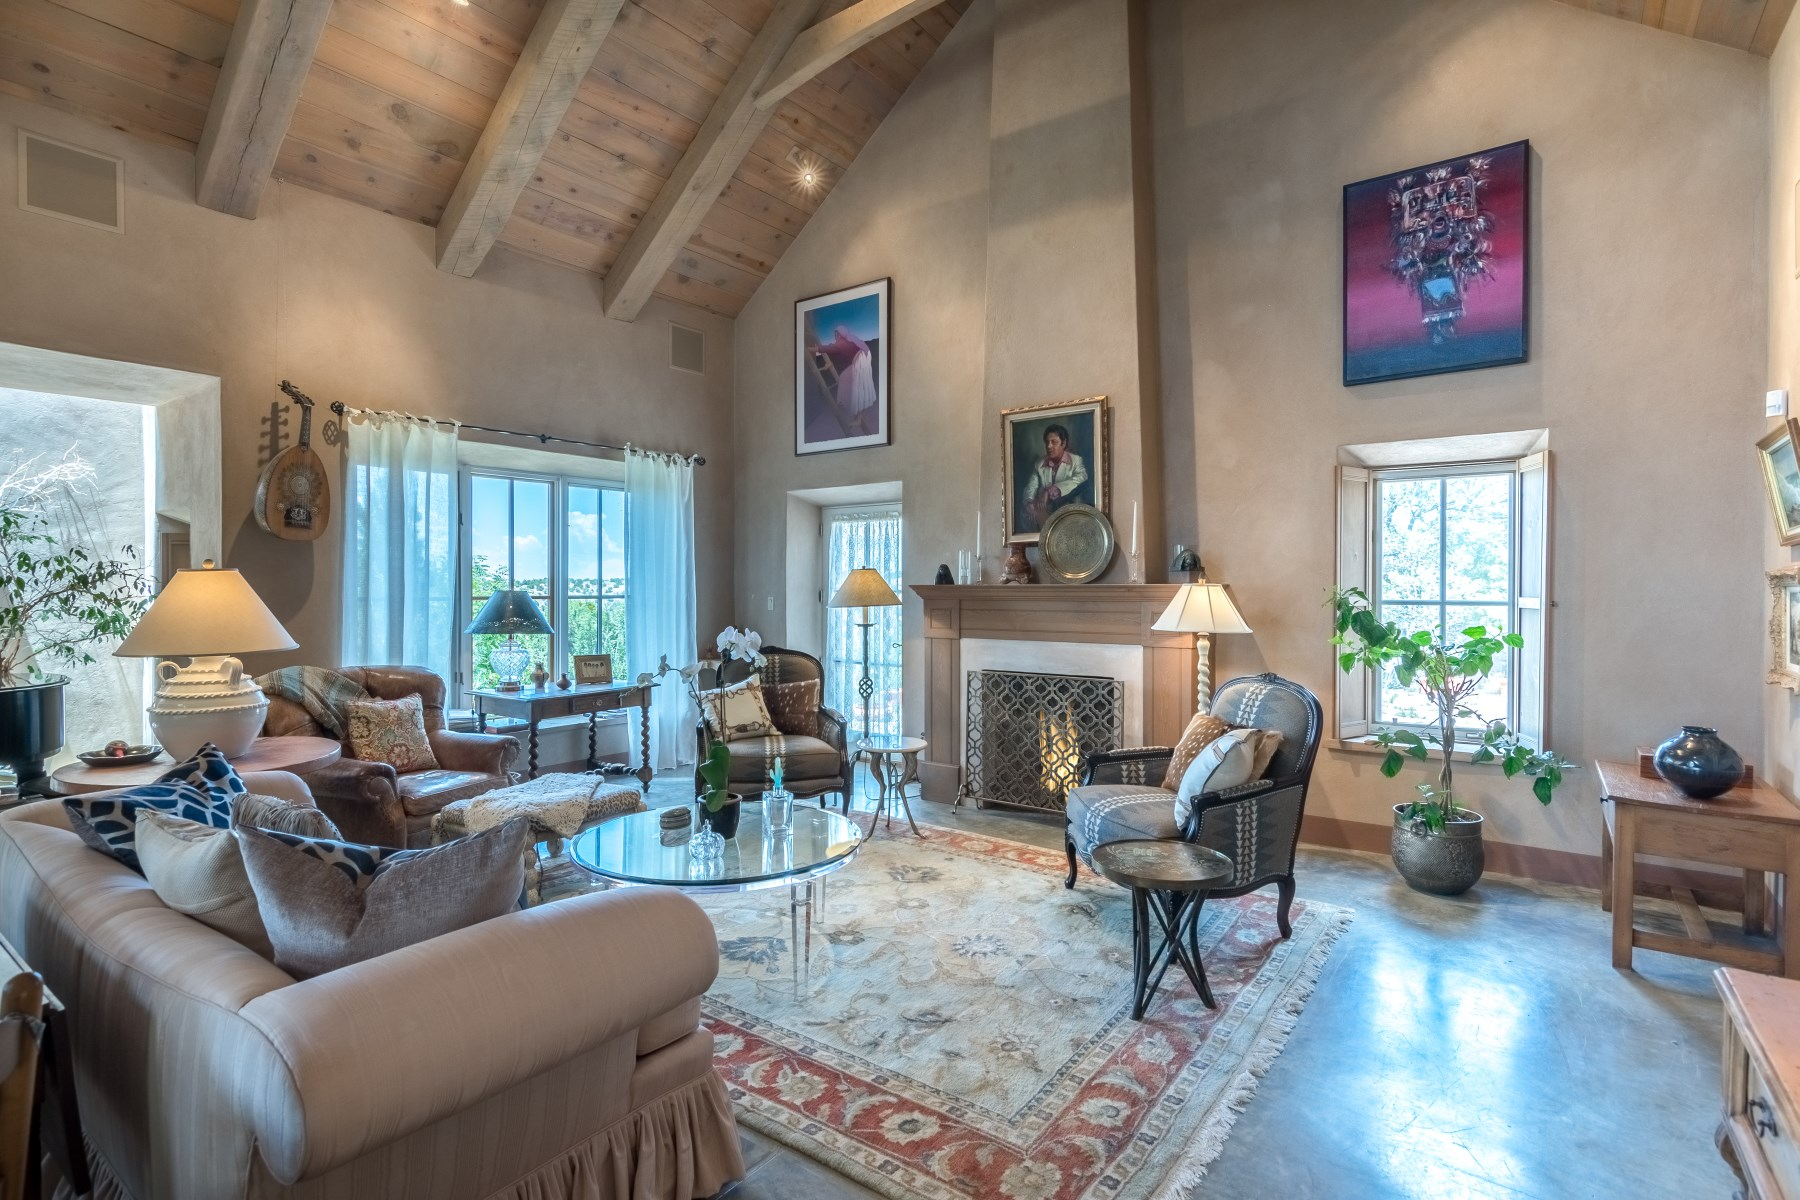 Single Family Home for Sale at 11 Running Horse Trail Santa Fe, New Mexico, 87508 United States